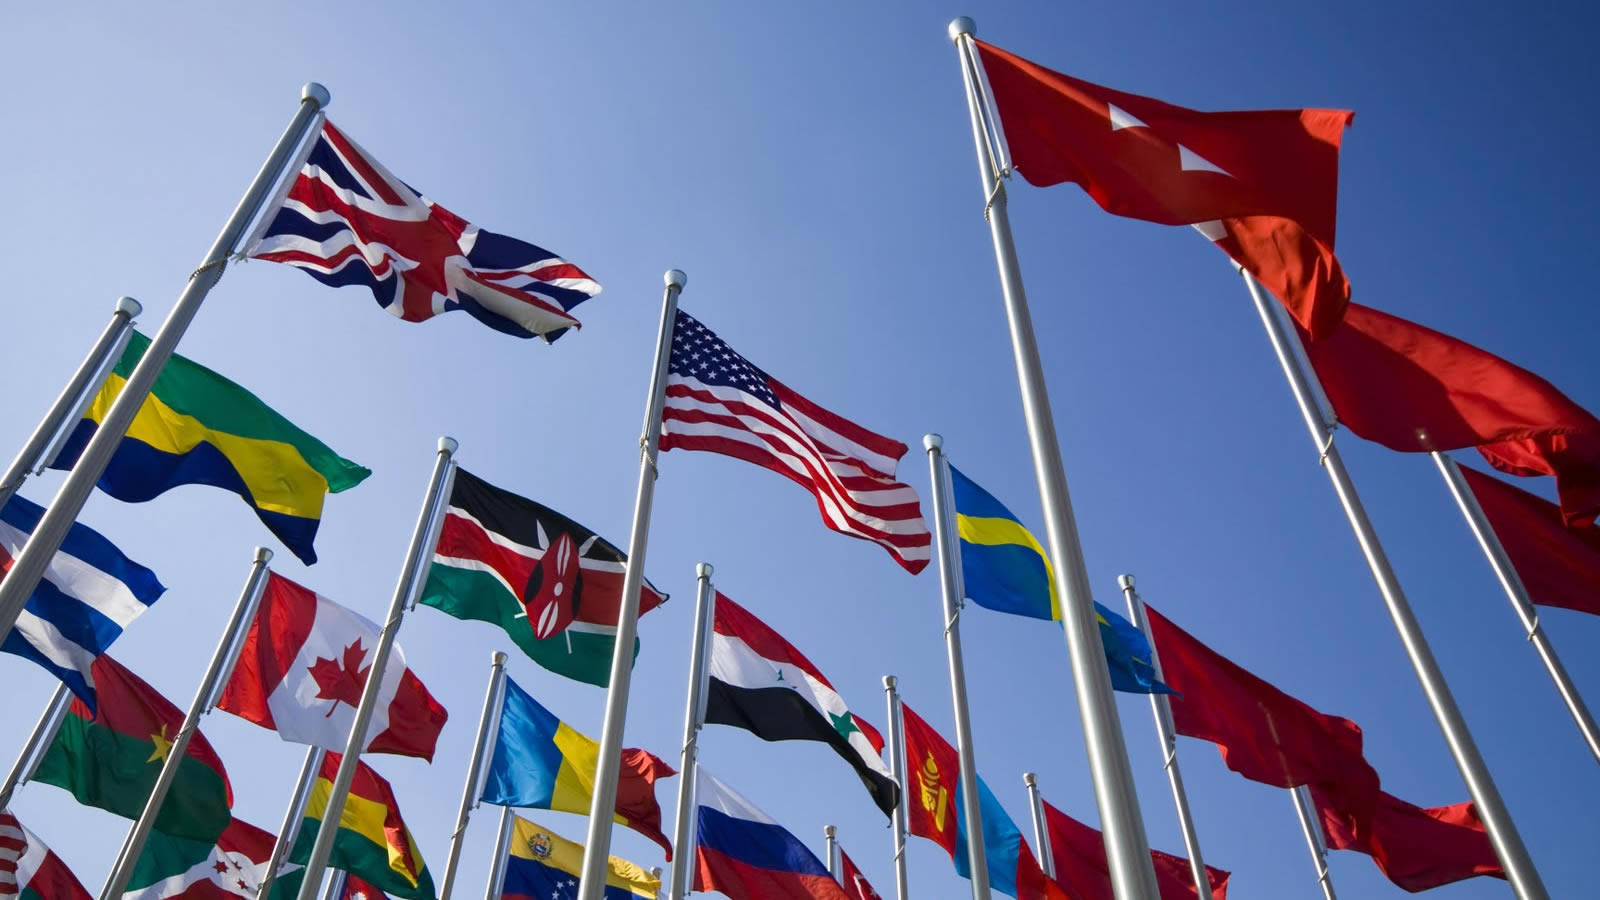 Multiple international flags flying against blue sky